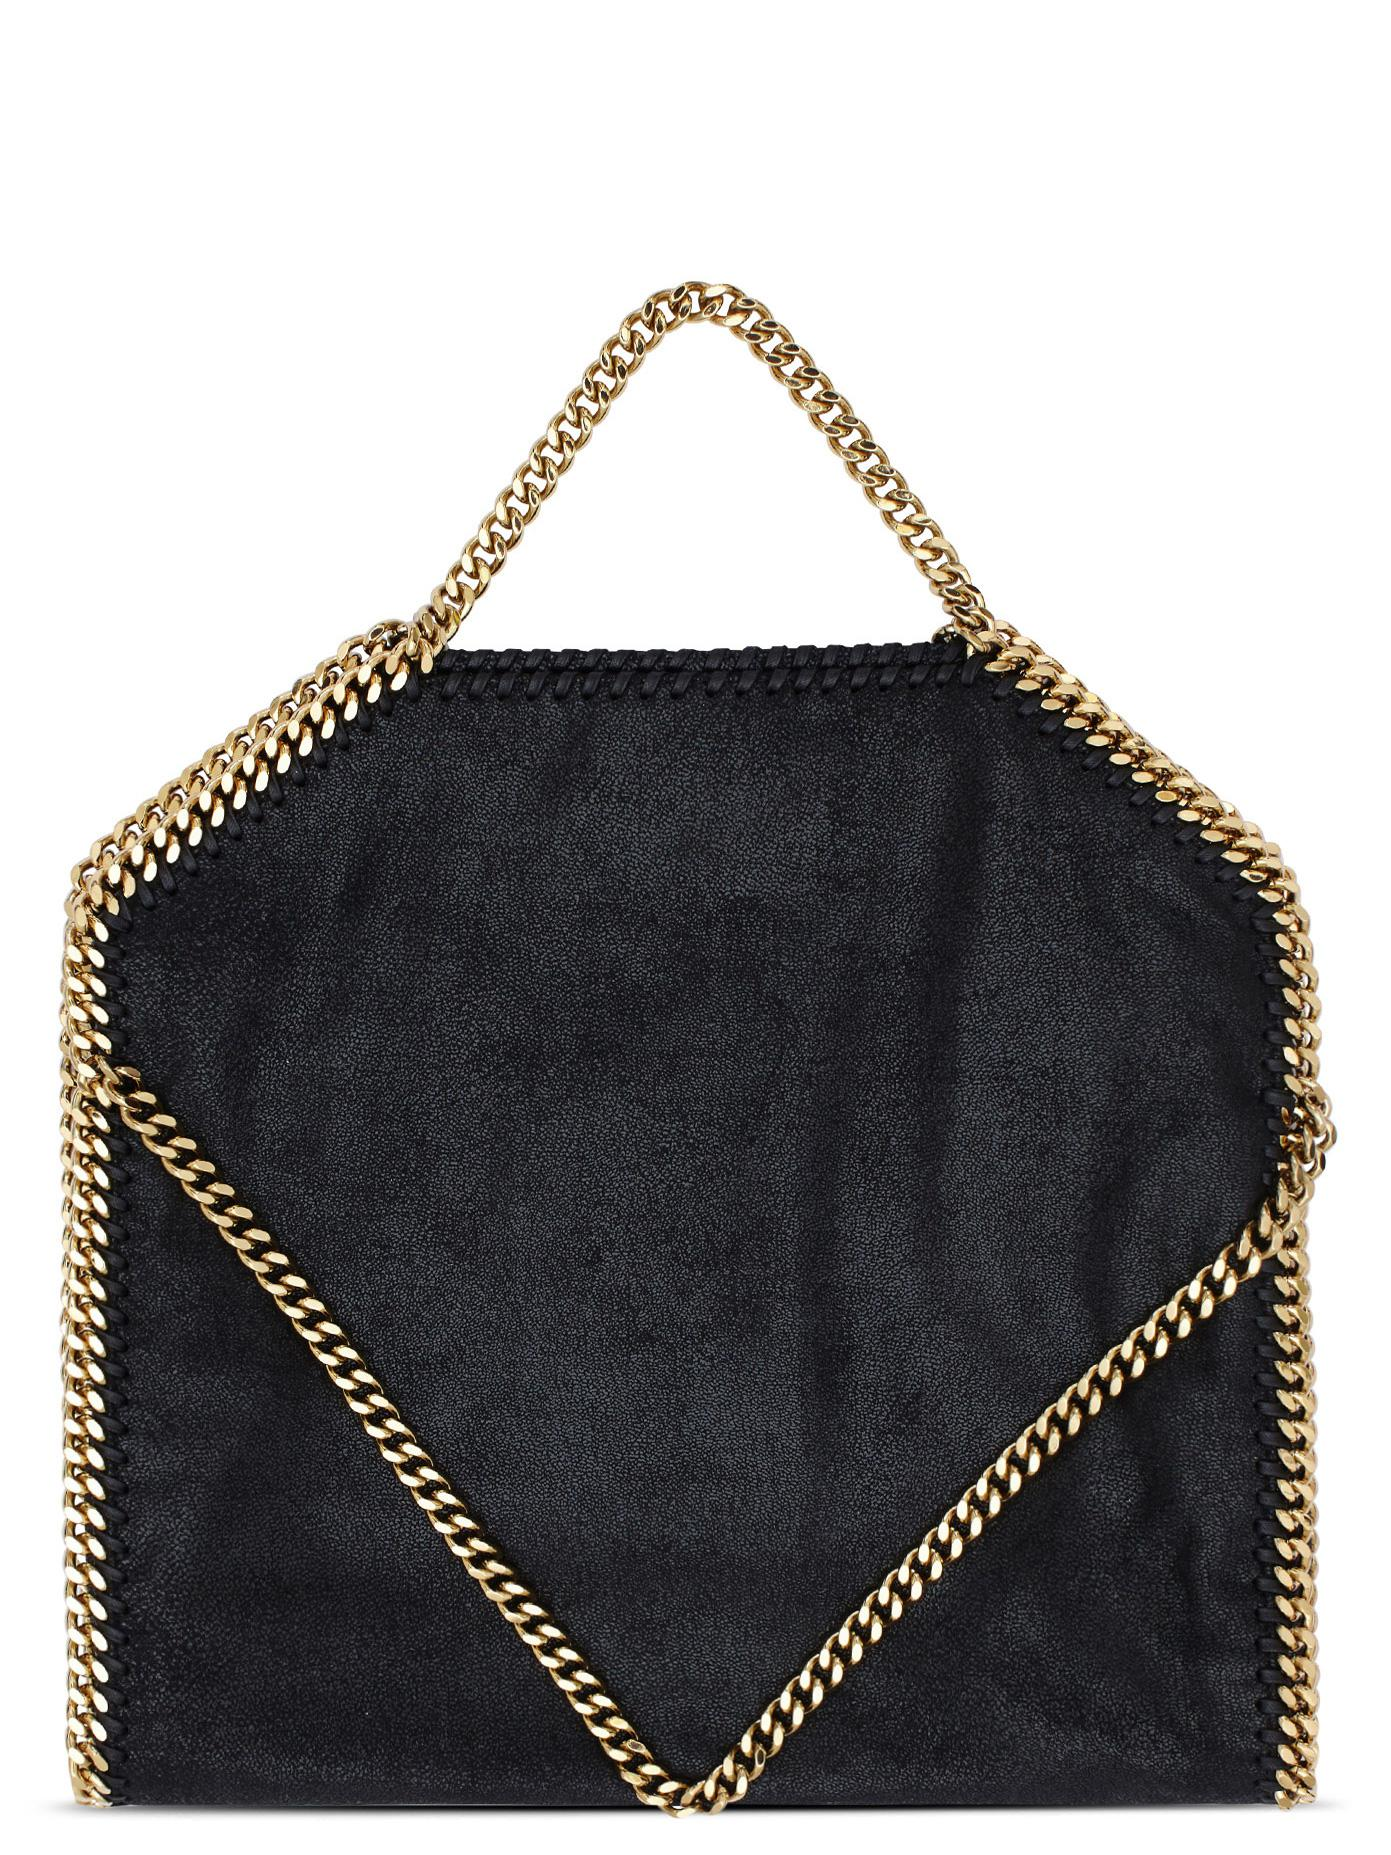 Stella McCartney Falabella Tote In Shaggy Deer in Black